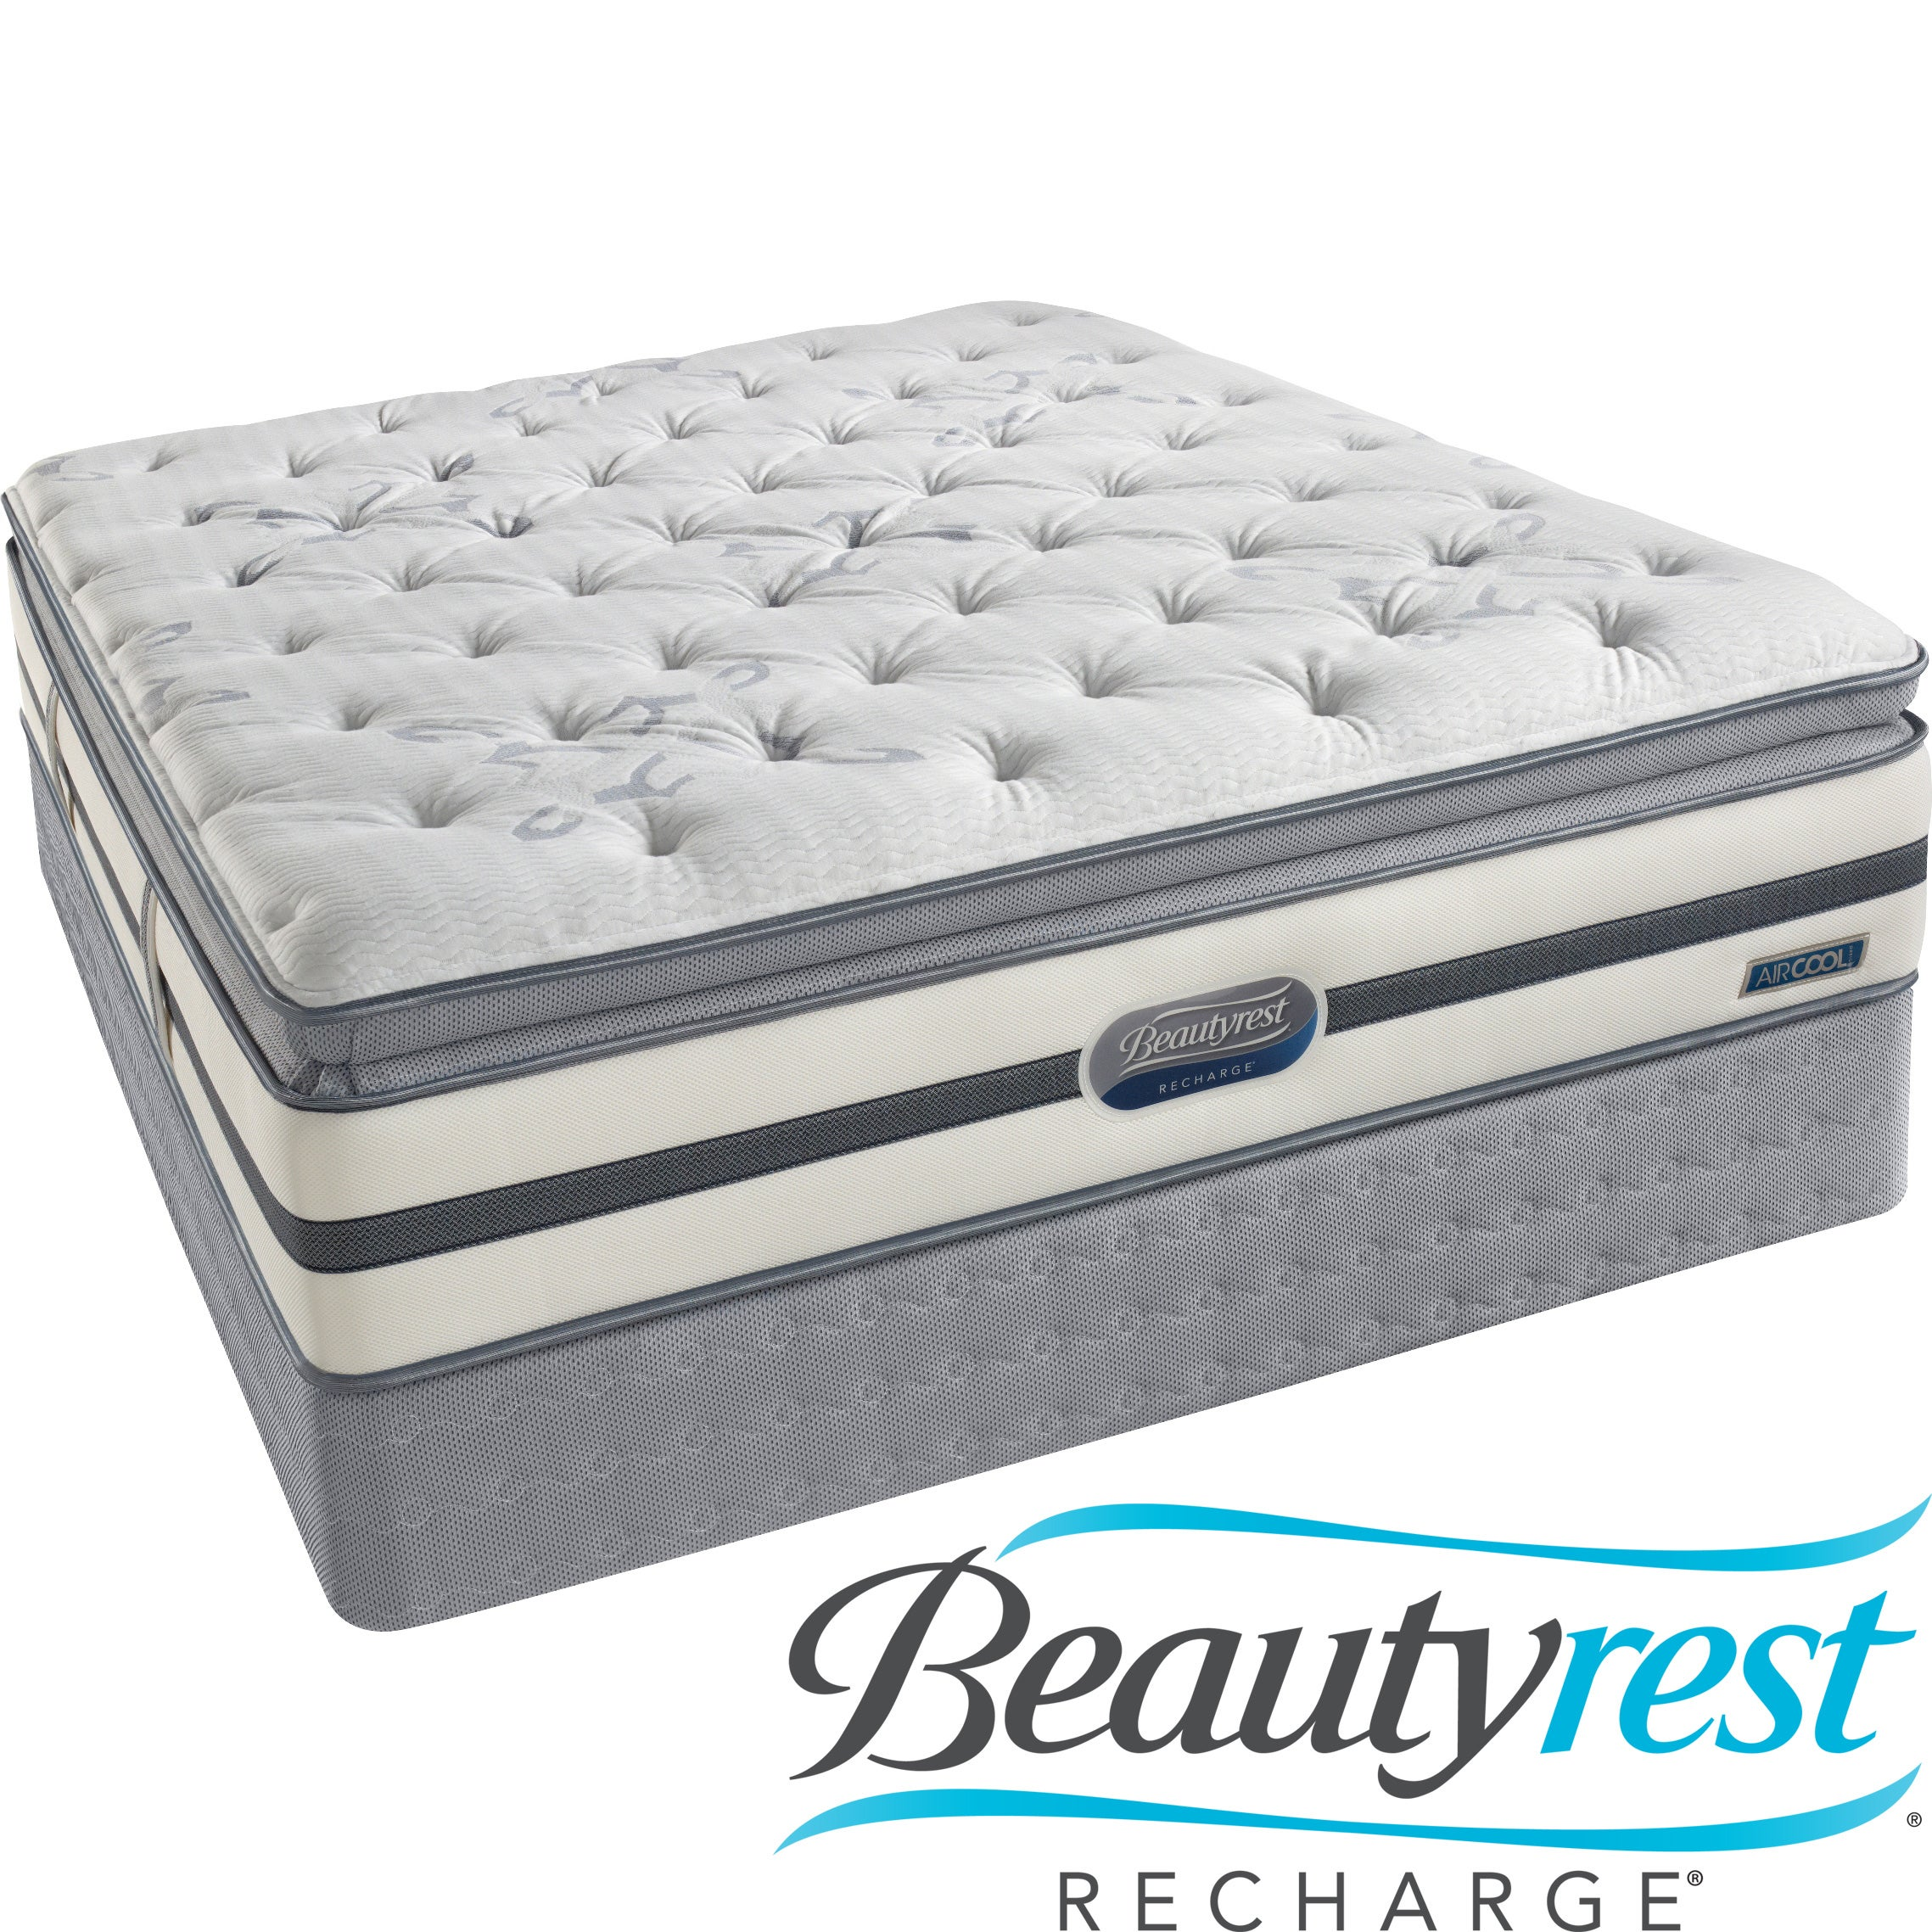 Beautyrest recharge spalding luxury firm queen mattress set bed mattress sale Queen size bed and mattress set